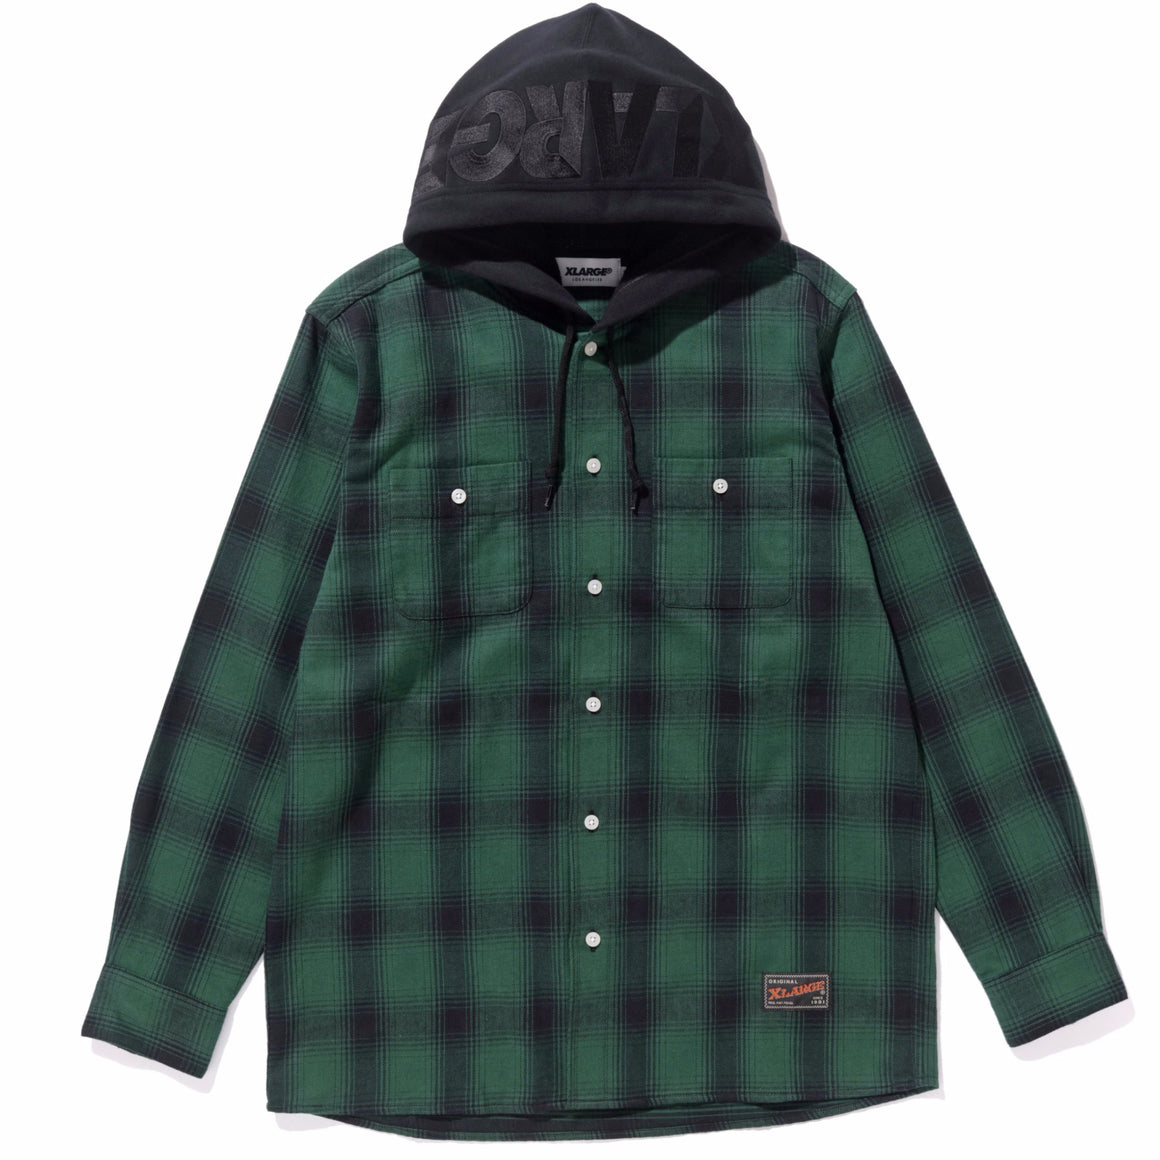 HOODED FLANNEL SHIRT - X-Large Clothing